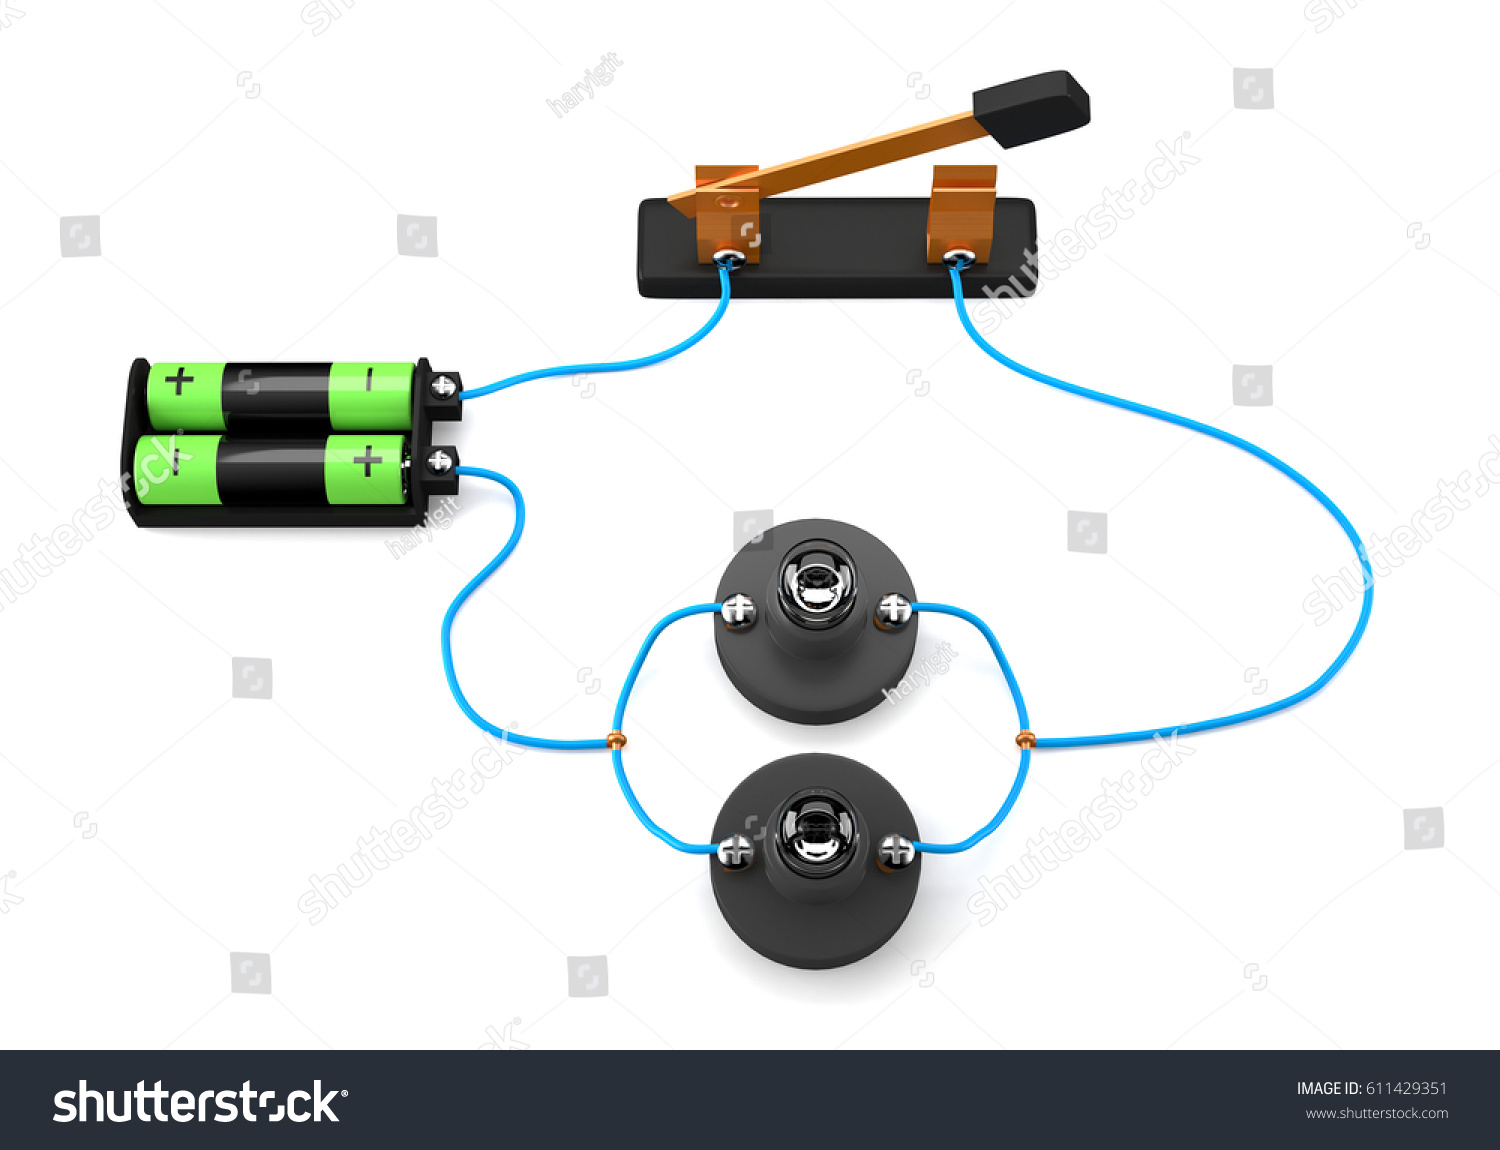 simple electric circuit parallel on white stock illustration rh shutterstock com electric circuits nilsson pdf electric circuit simulator